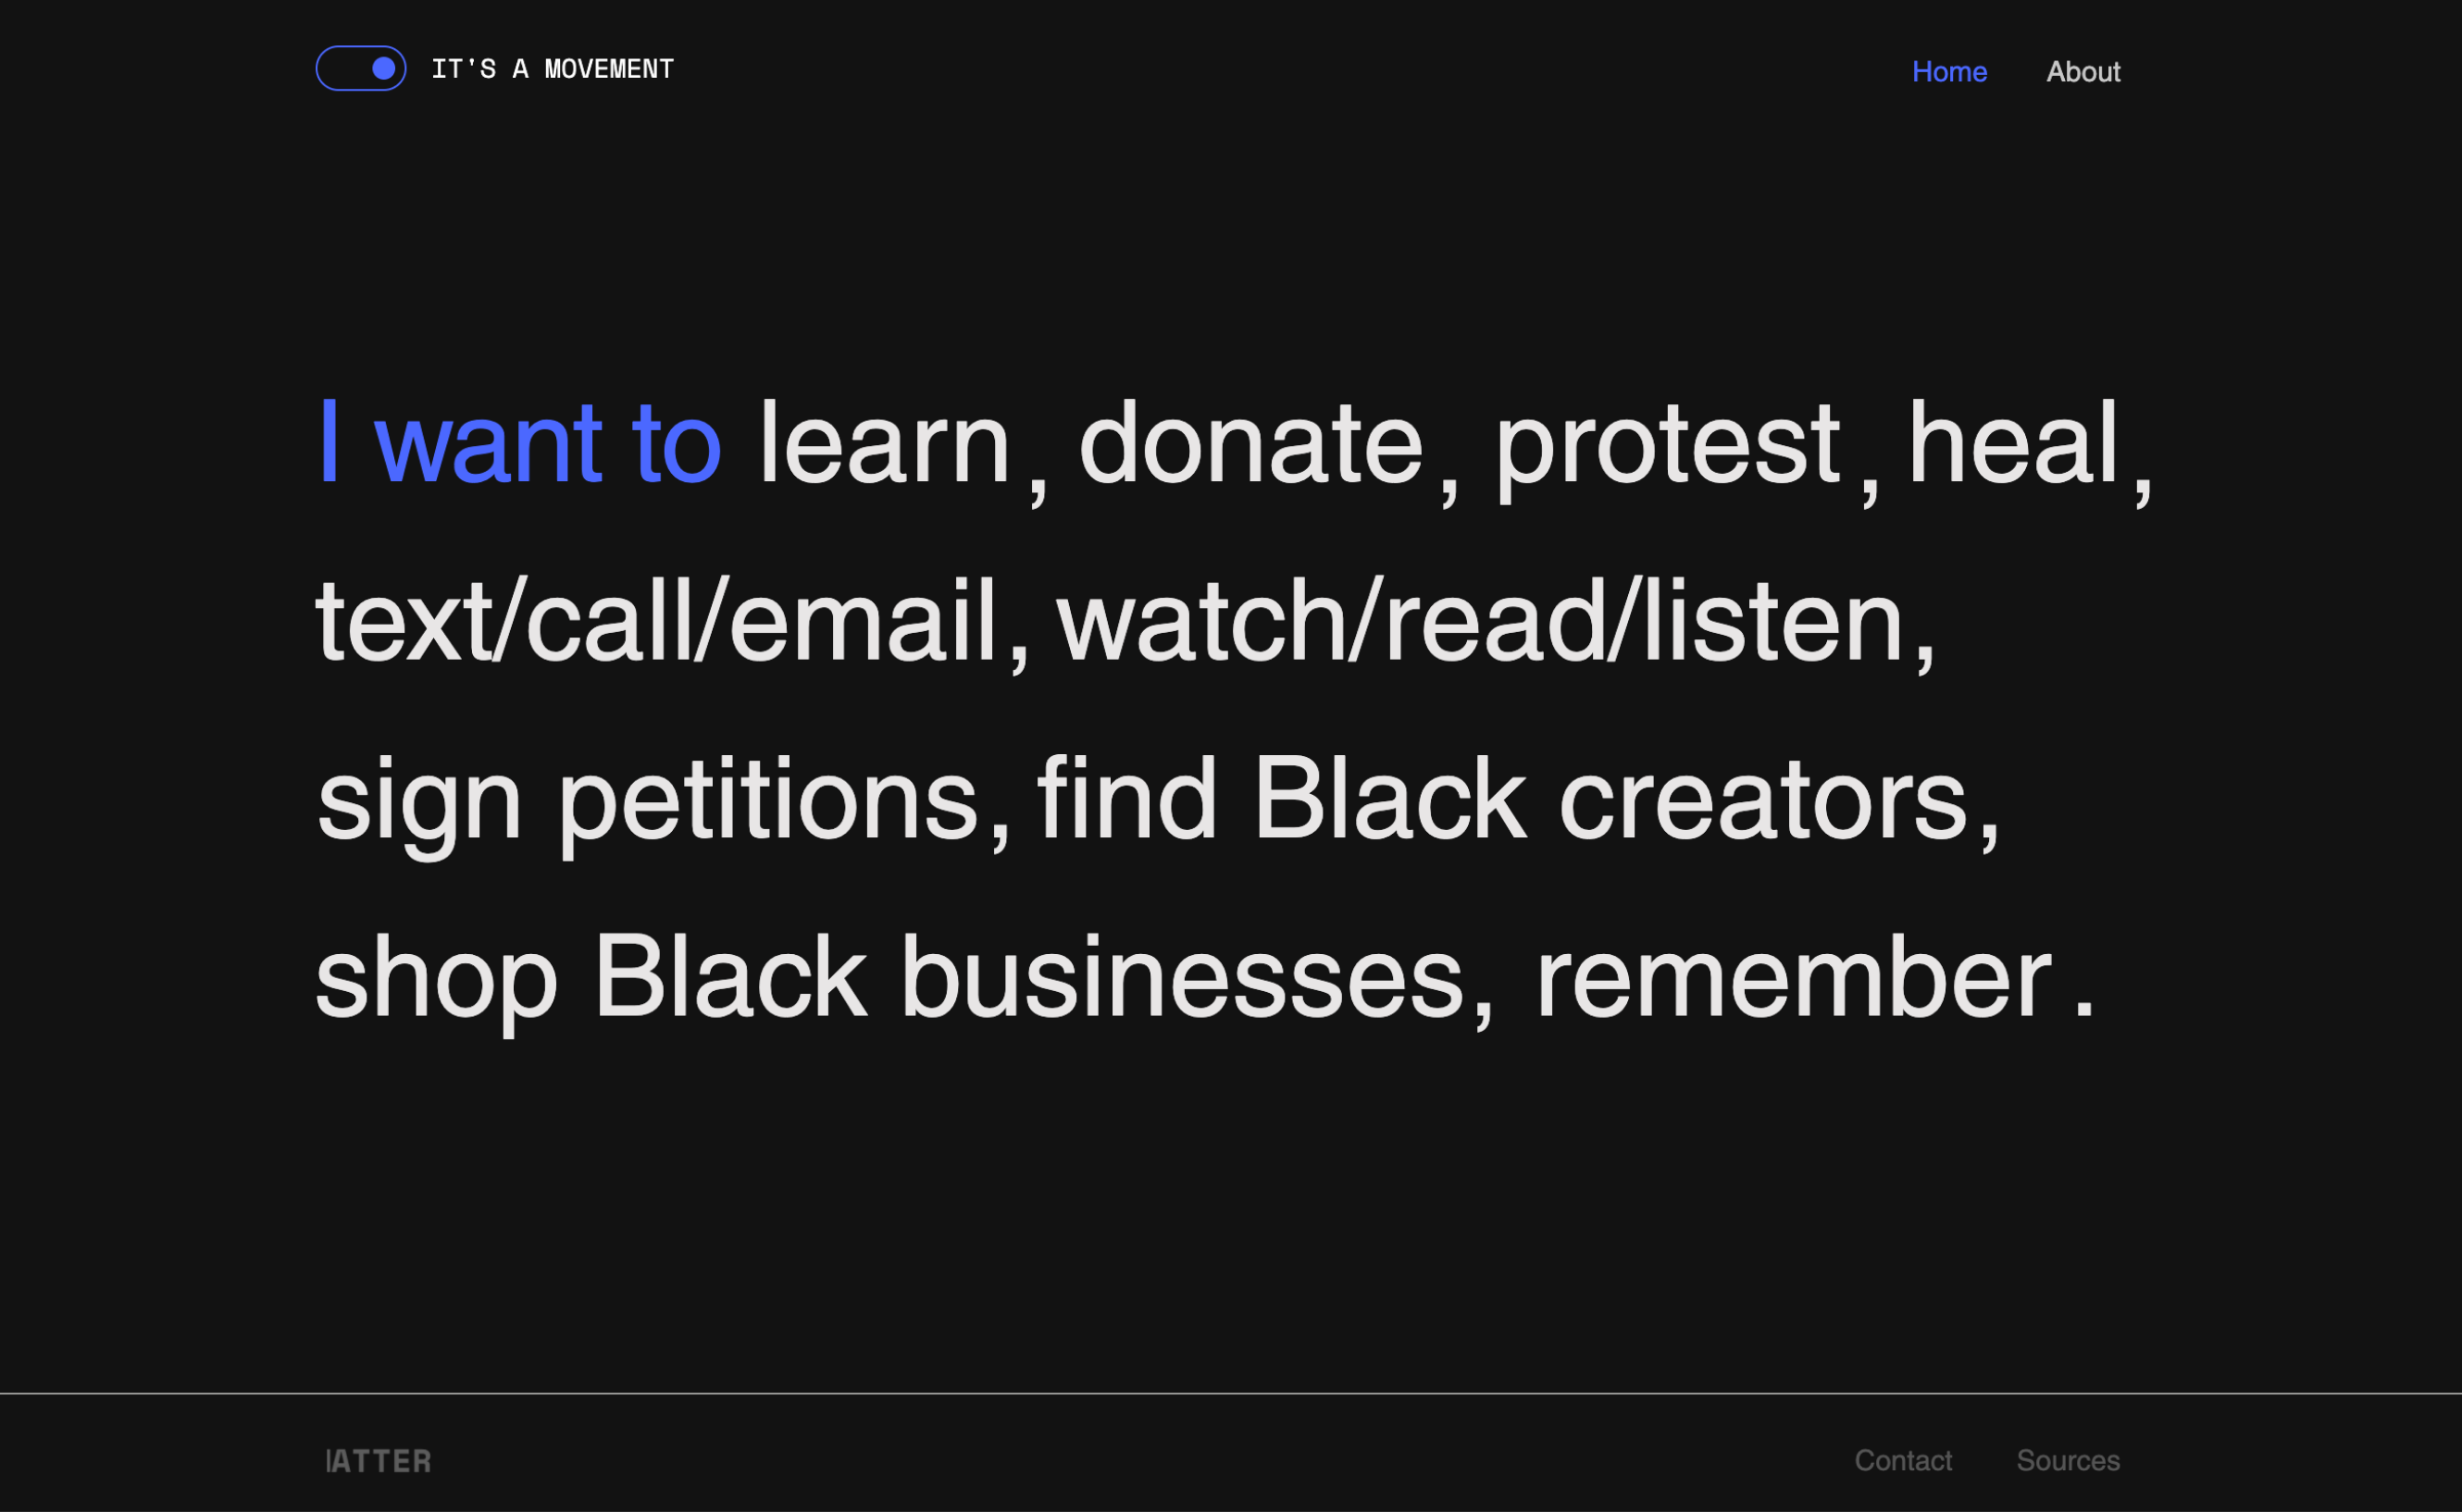 Homepage of notamoment.com asking users to explore different activist topics to learn about